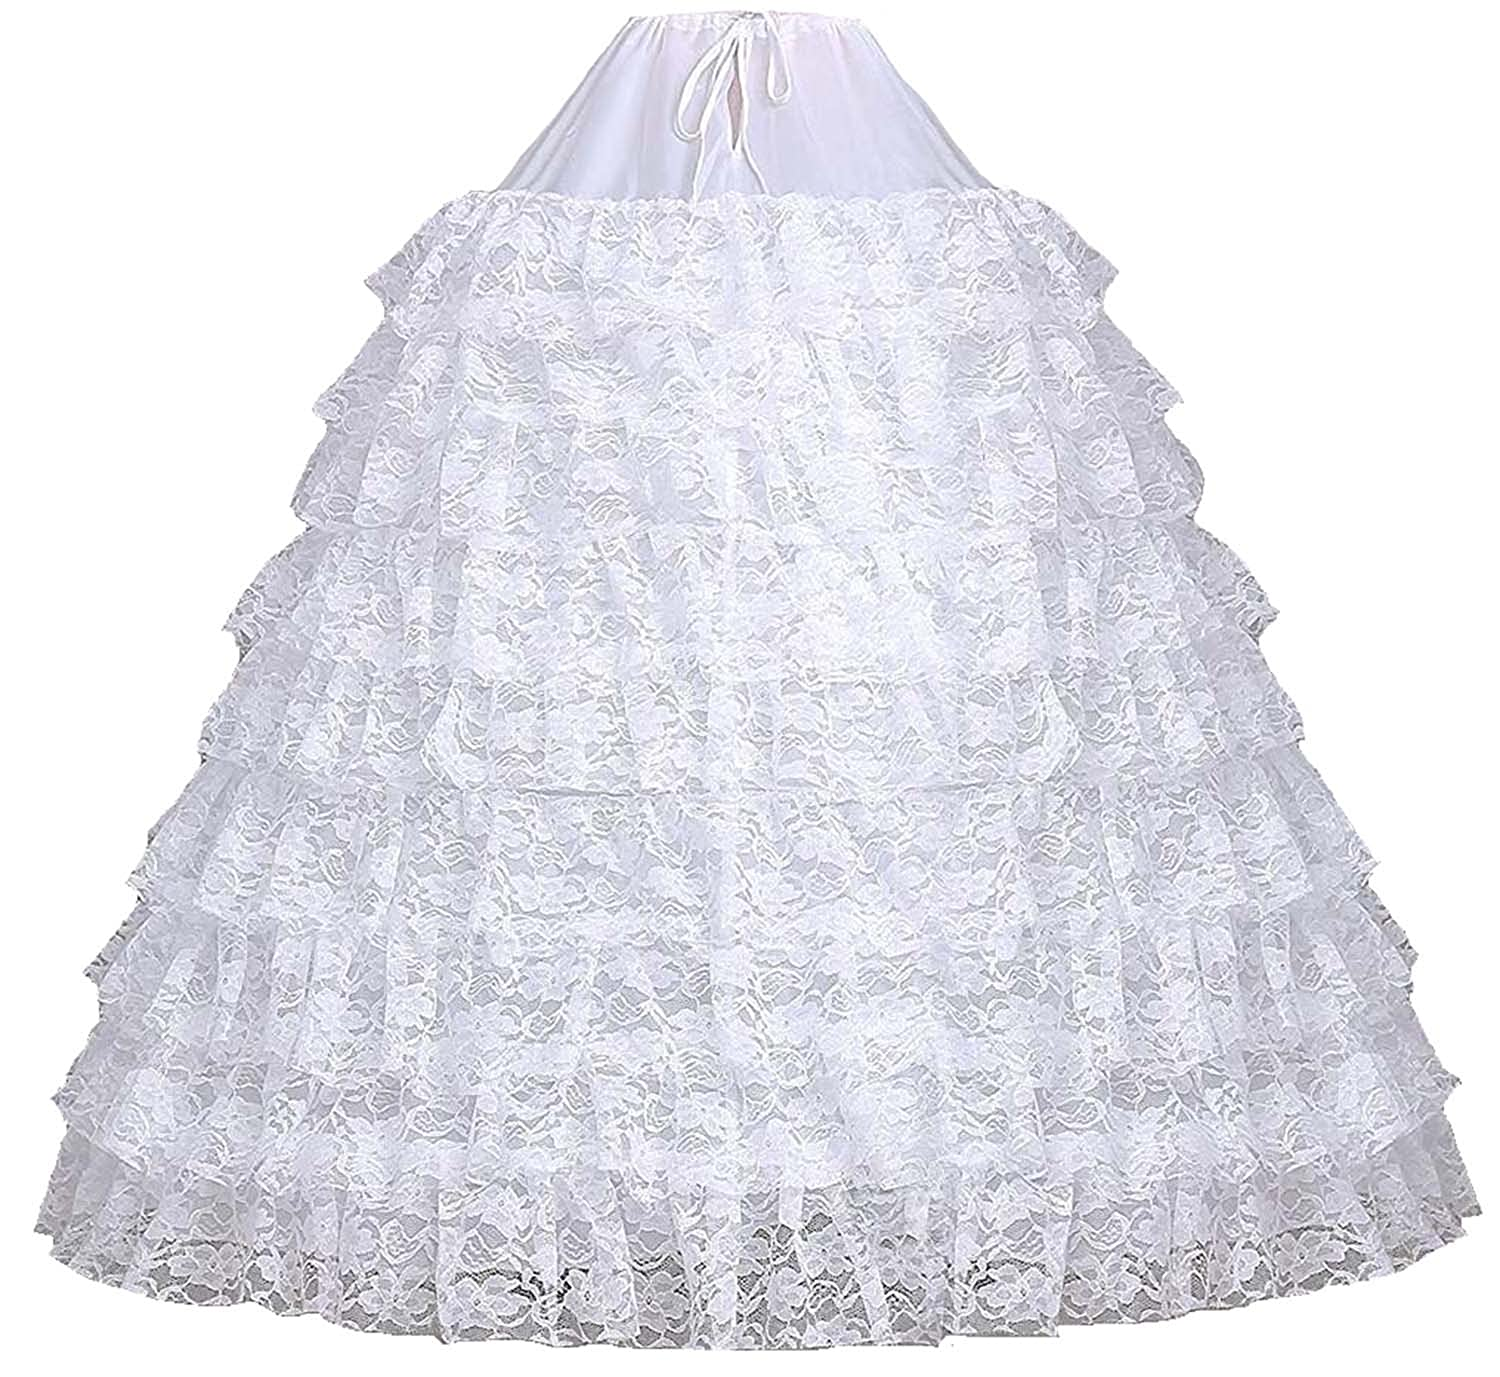 low-cost V.C.Formark Hoops Skirt Lace Bridal Petticoat White ...